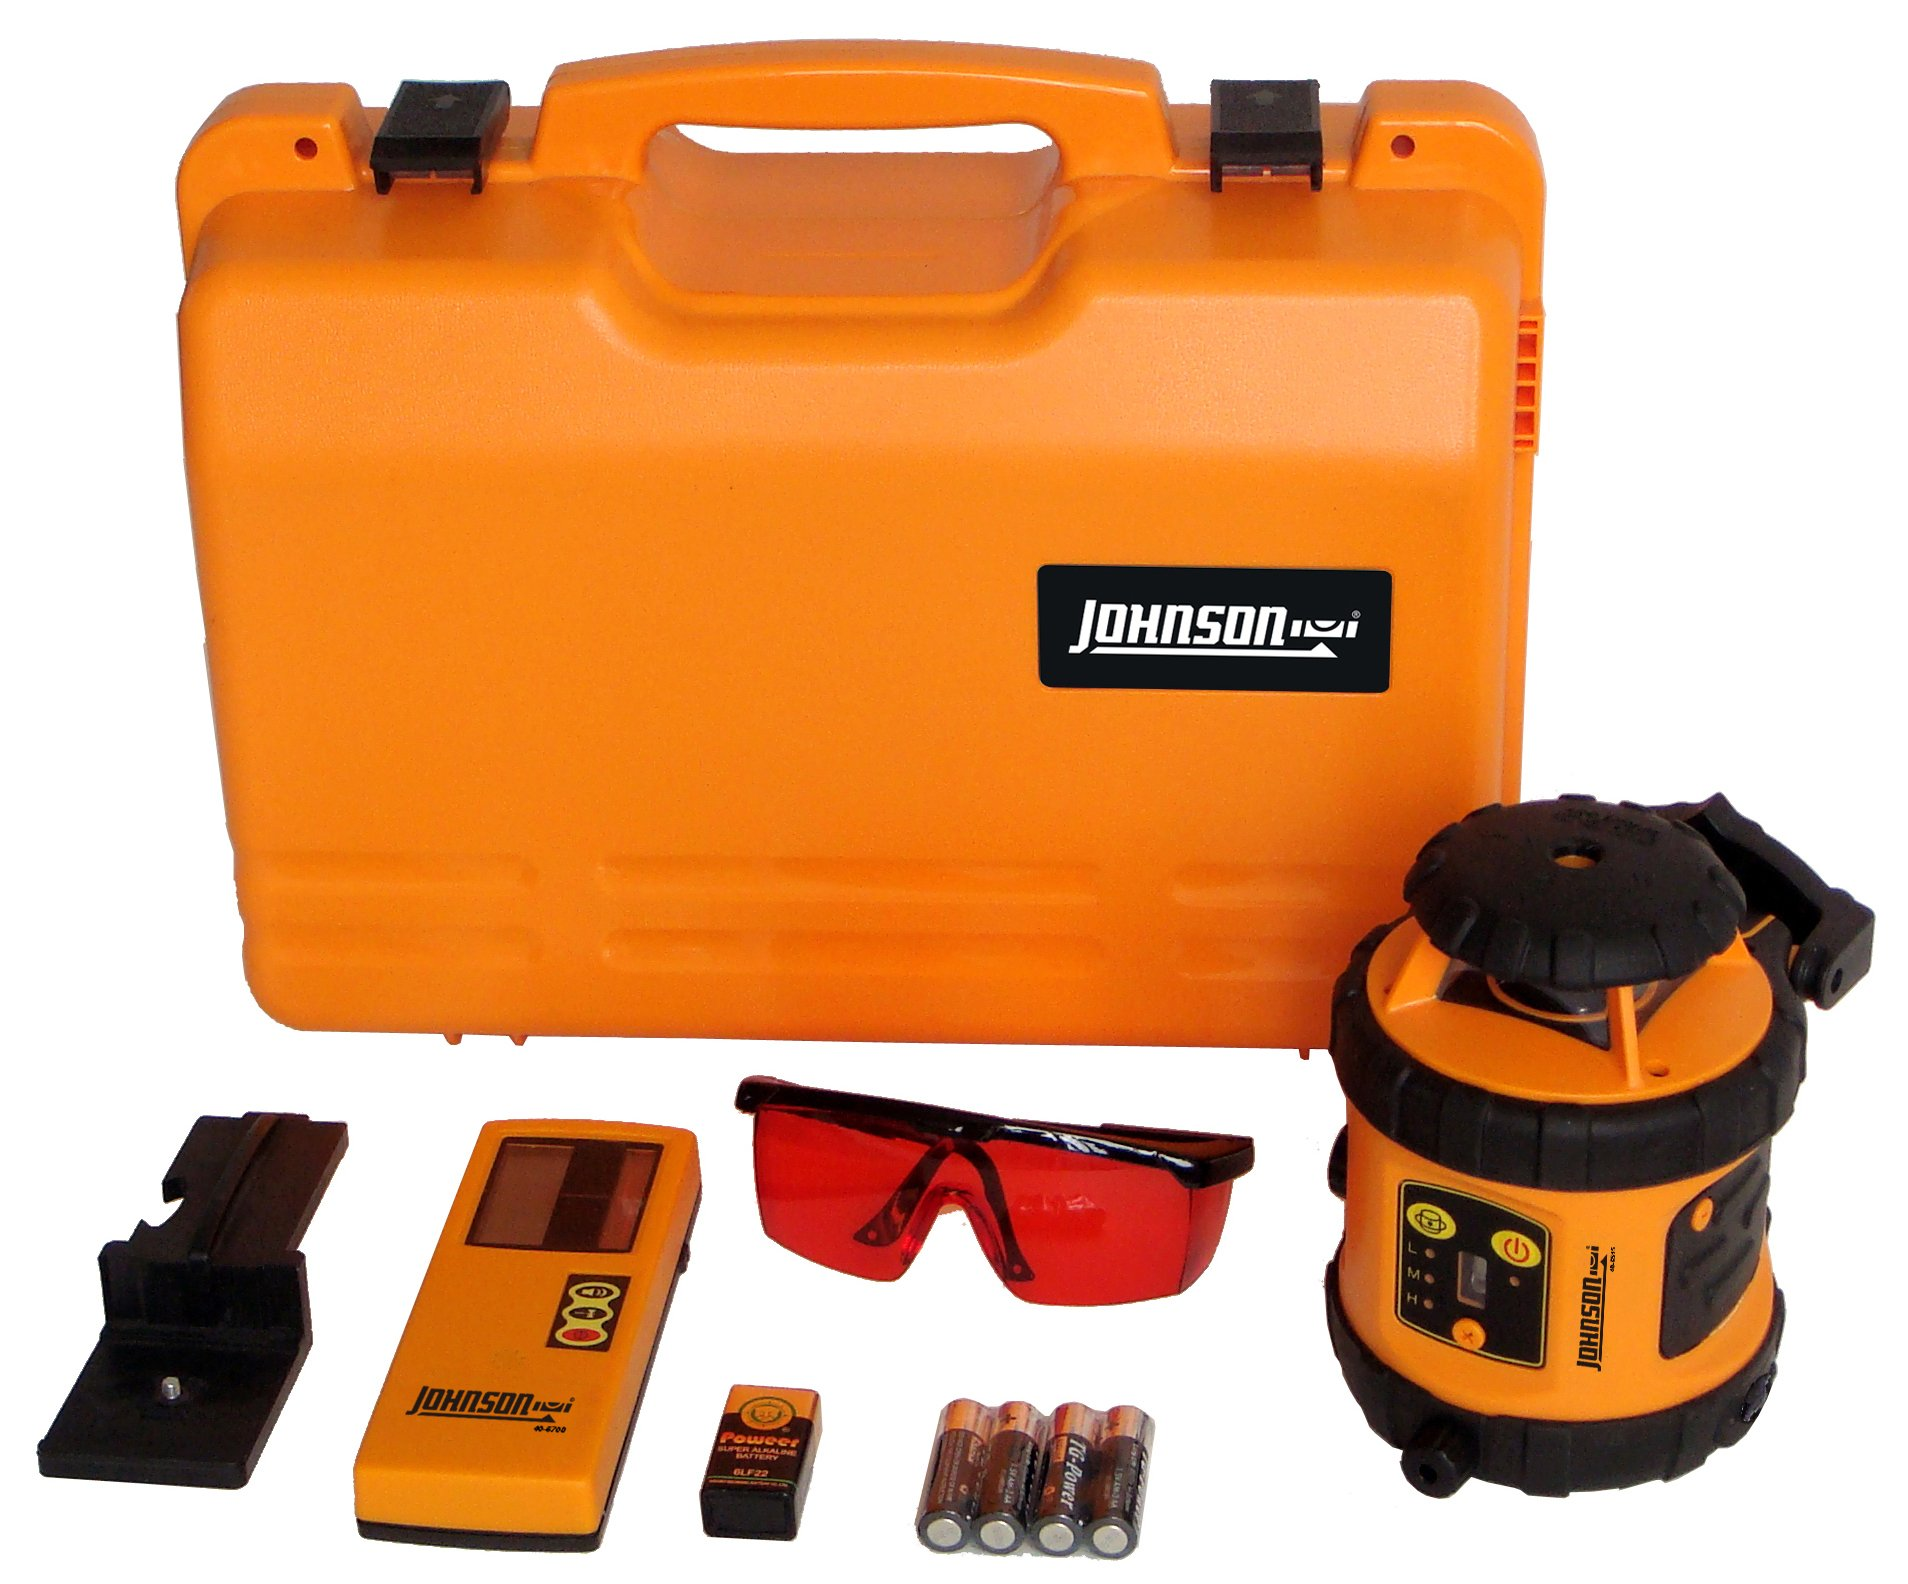 Johnson Level and Tool 40-6516 Self-Leveling Rotary Laser Level by Acculine